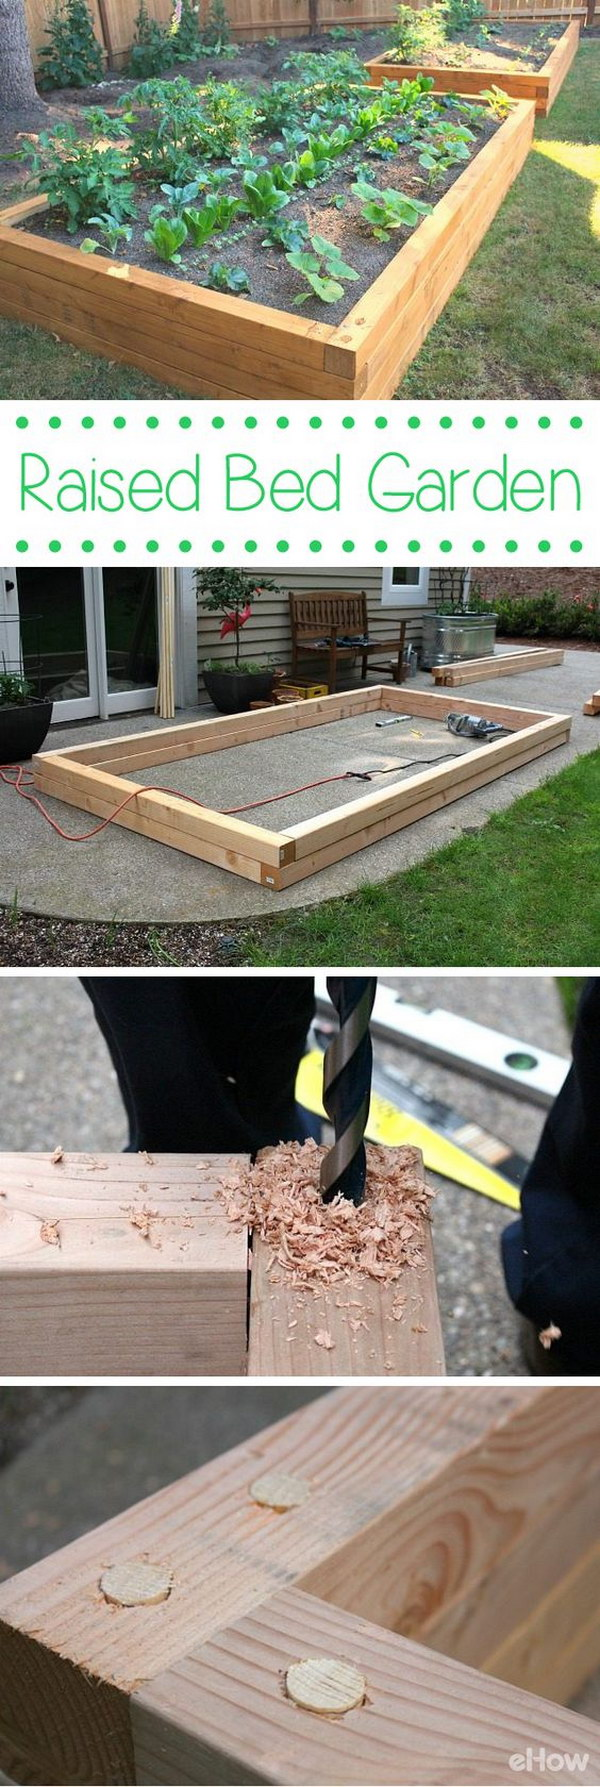 Raised Garden Bed.